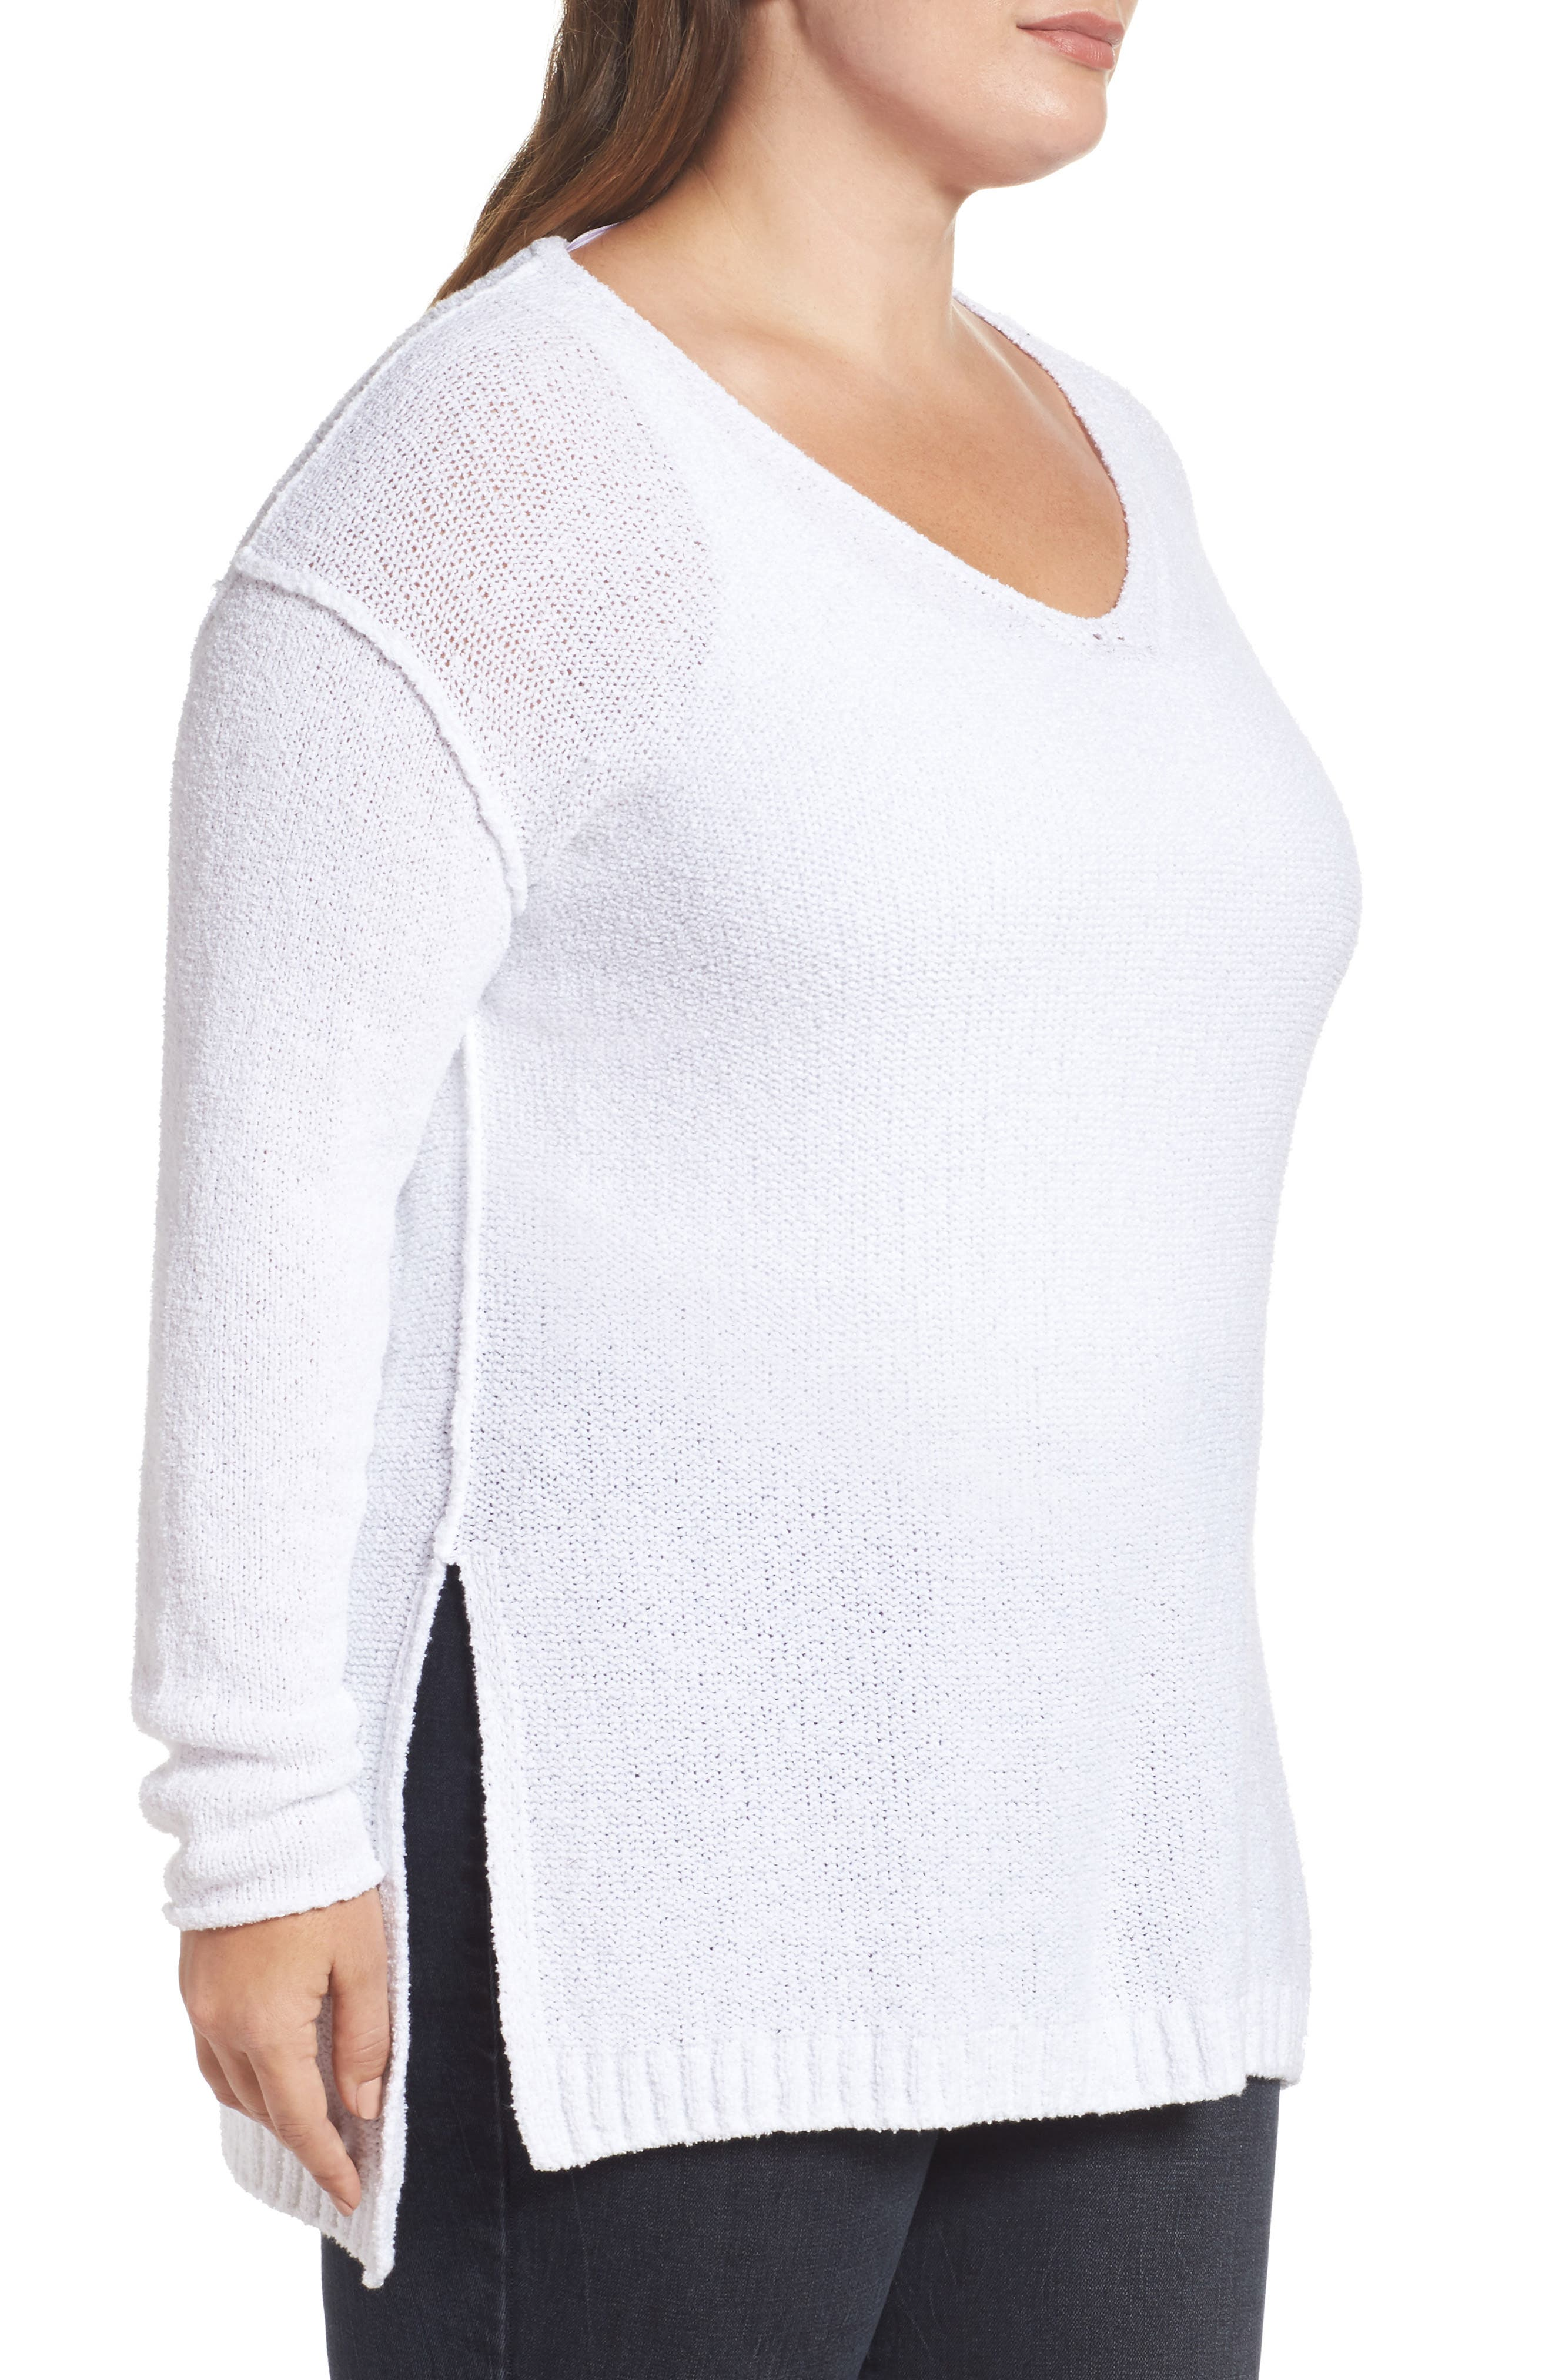 Tunic Sweater,                             Alternate thumbnail 3, color,                             100